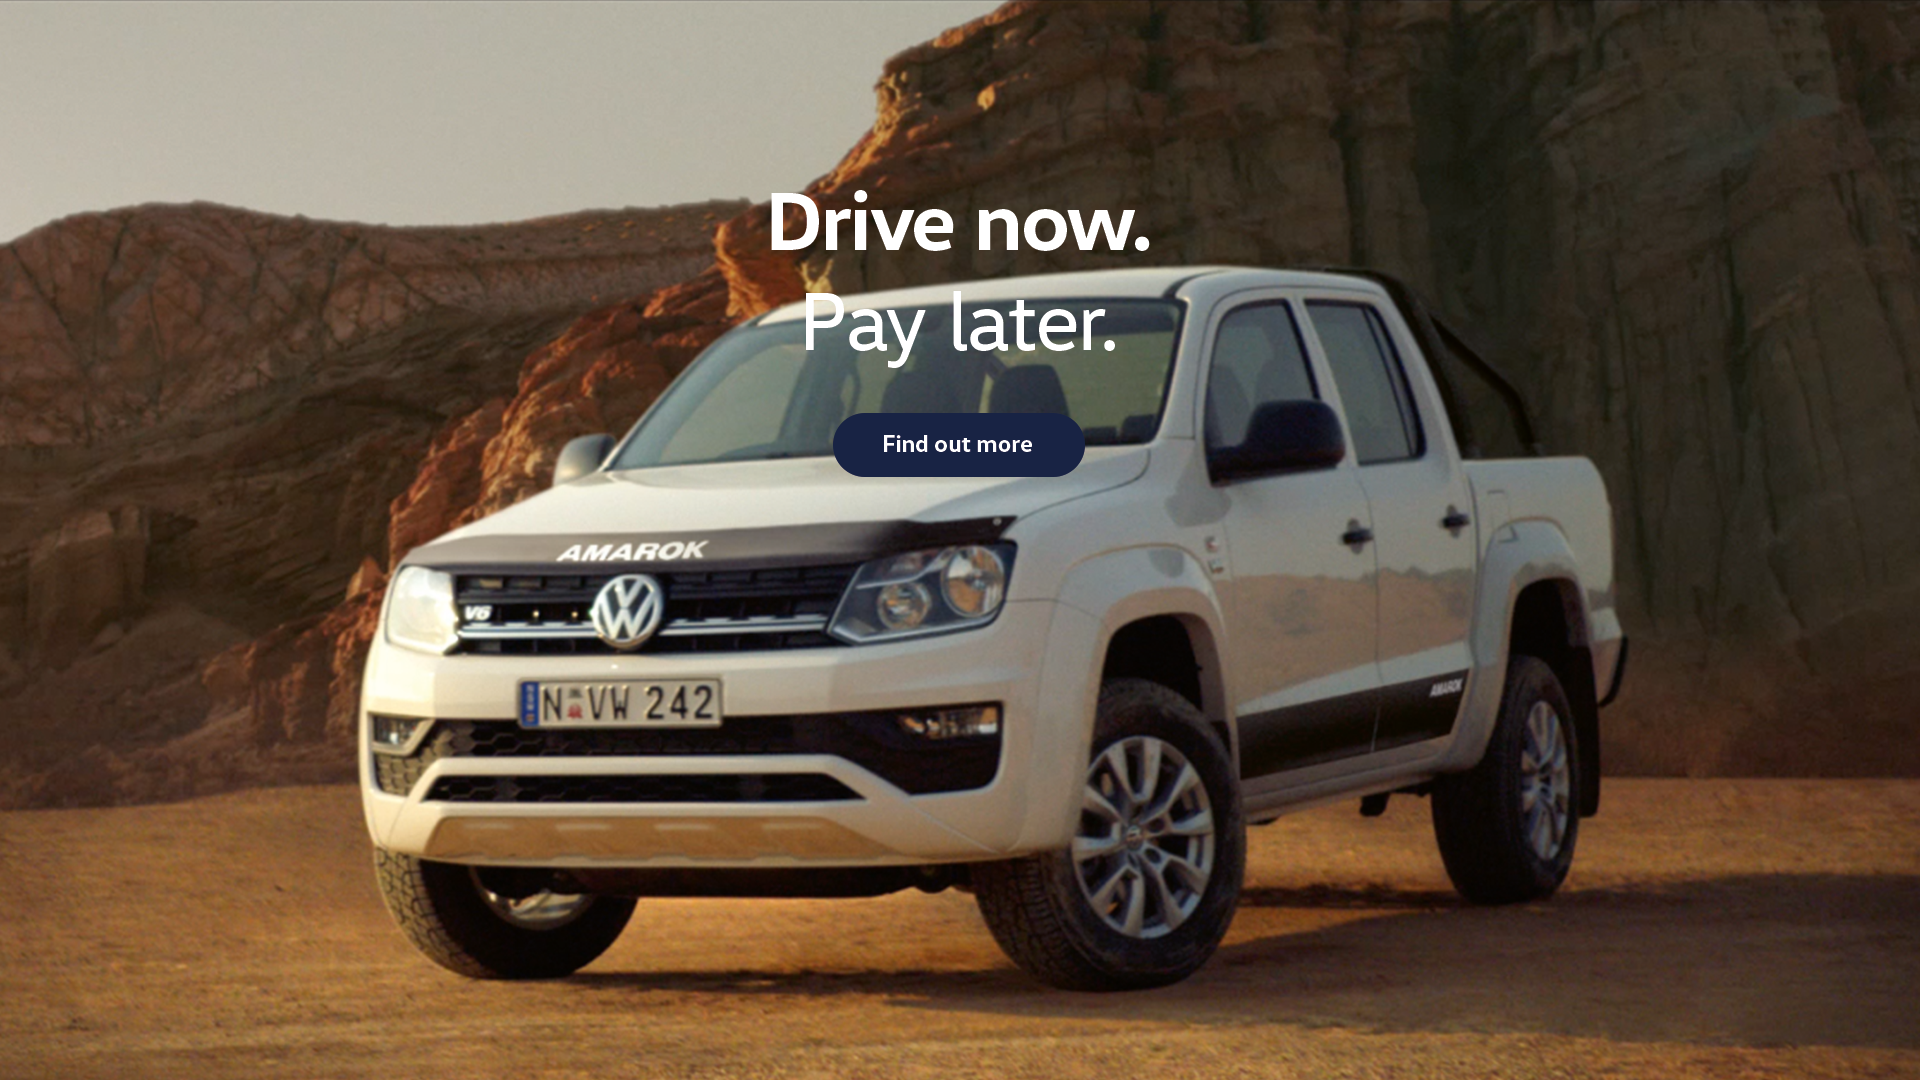 Volkswagen Amarok. Drive now. Pay later. Test drive today at Shepparton Volkswagen.